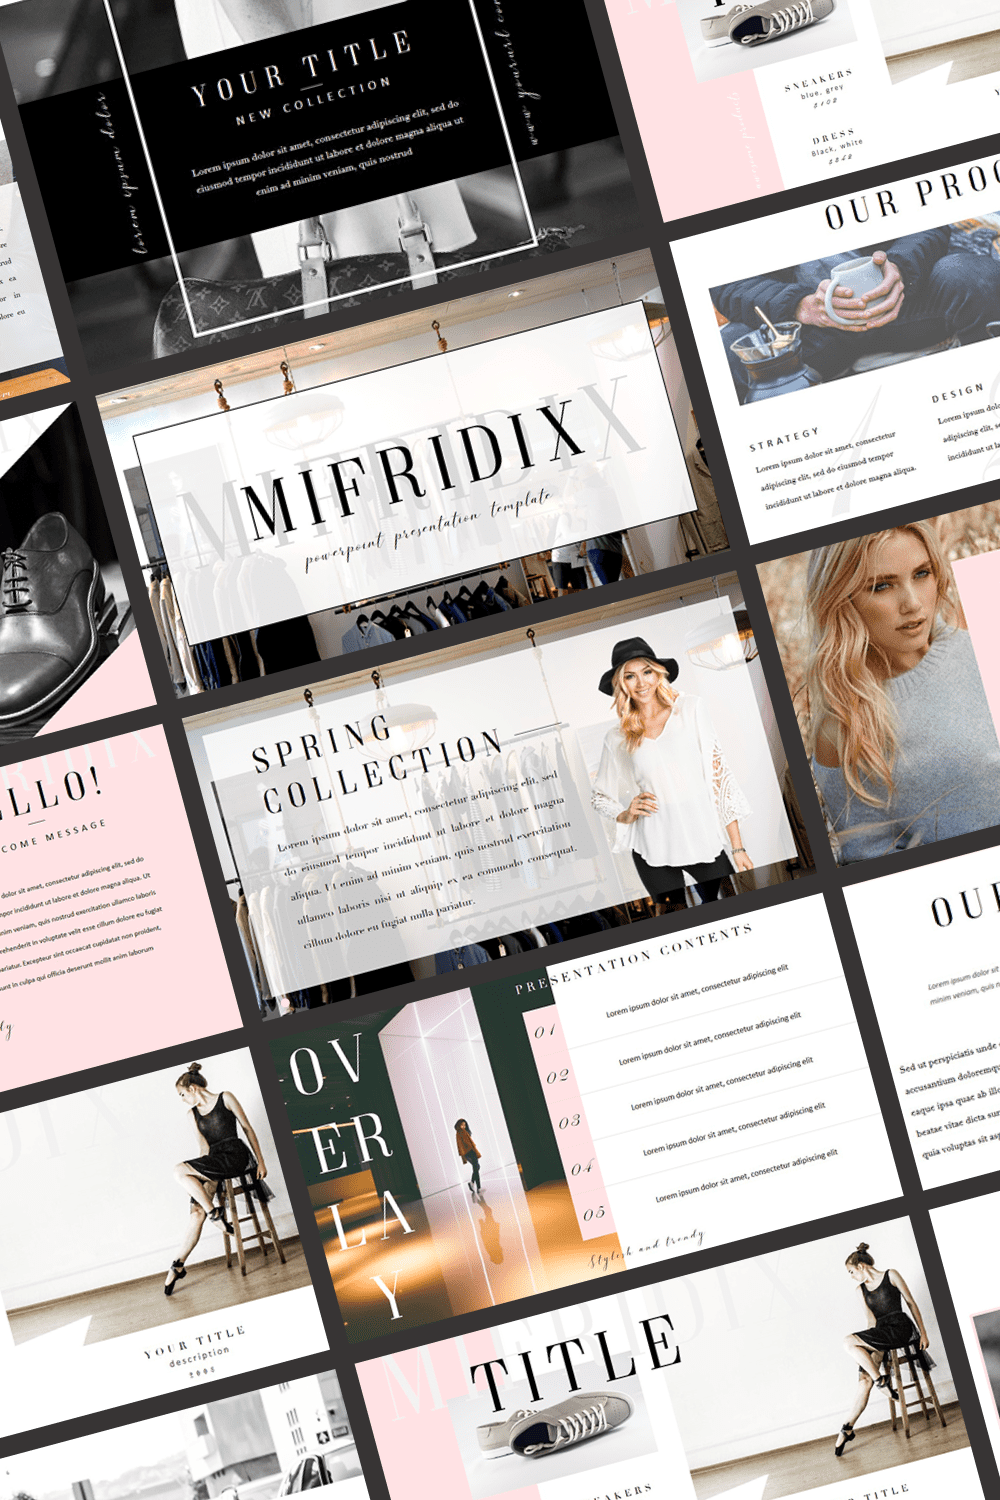 Mifridix - Powerpoint Template by MasterBundles Pinterest Collage Image.